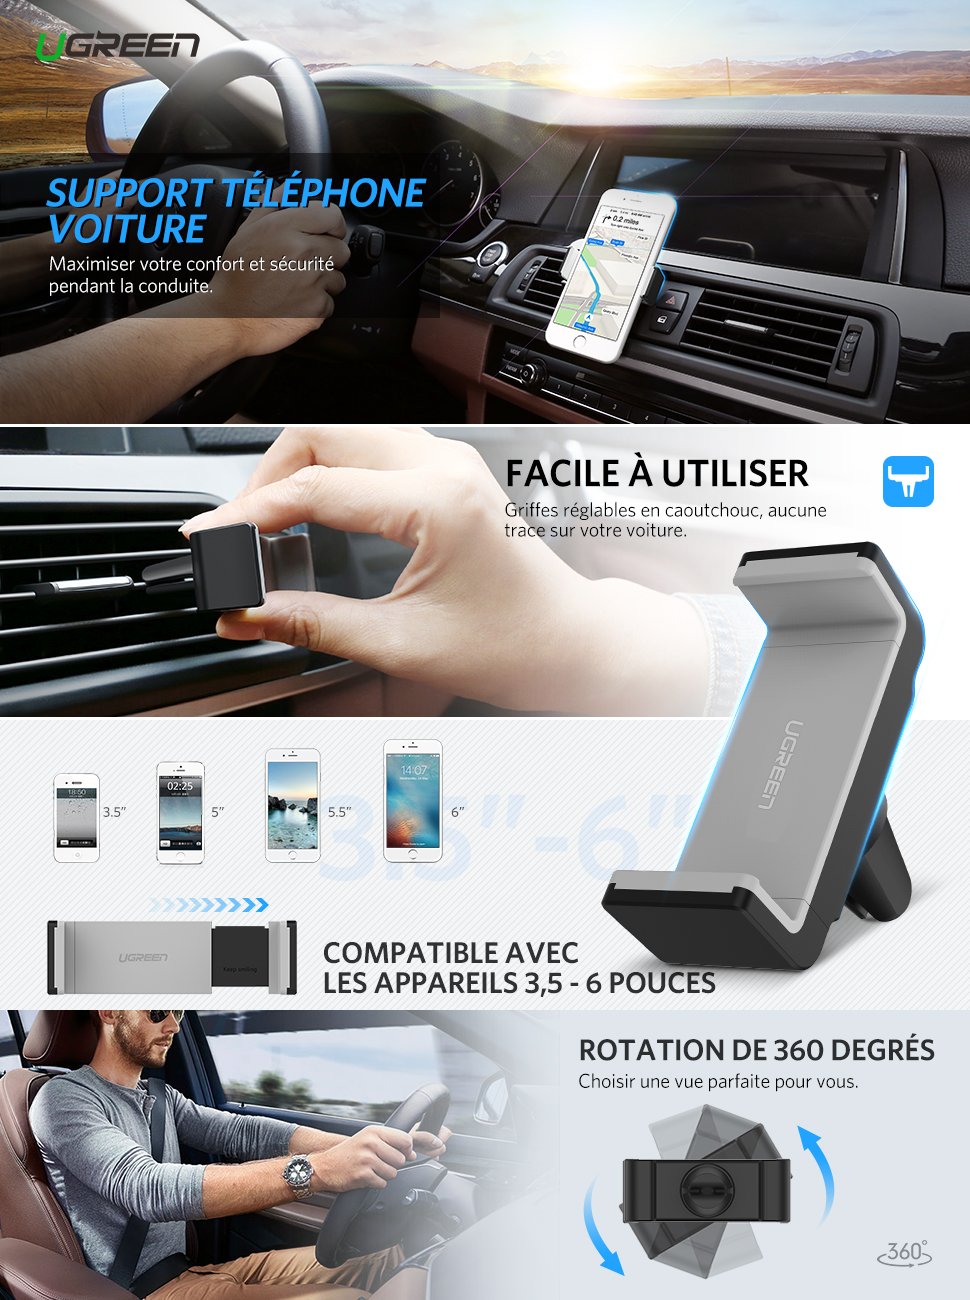 ugreen support t l phone voiture grille d 39 a ration avec rotation 360 pour iphone x 8 plus 8. Black Bedroom Furniture Sets. Home Design Ideas